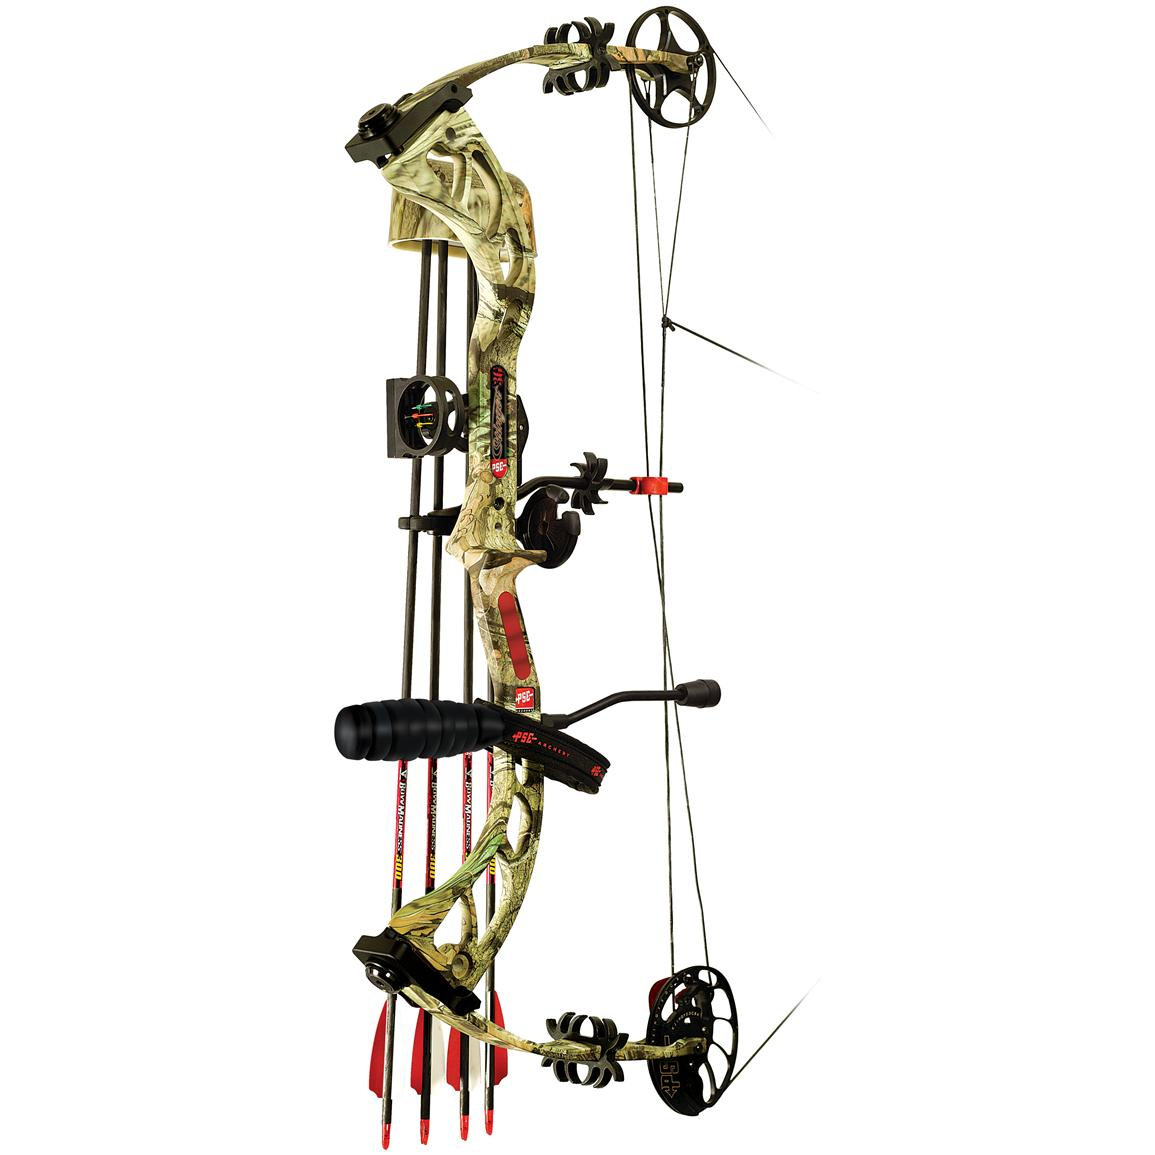 PSE® Stinger 3G Compound Bow Field Ready Package